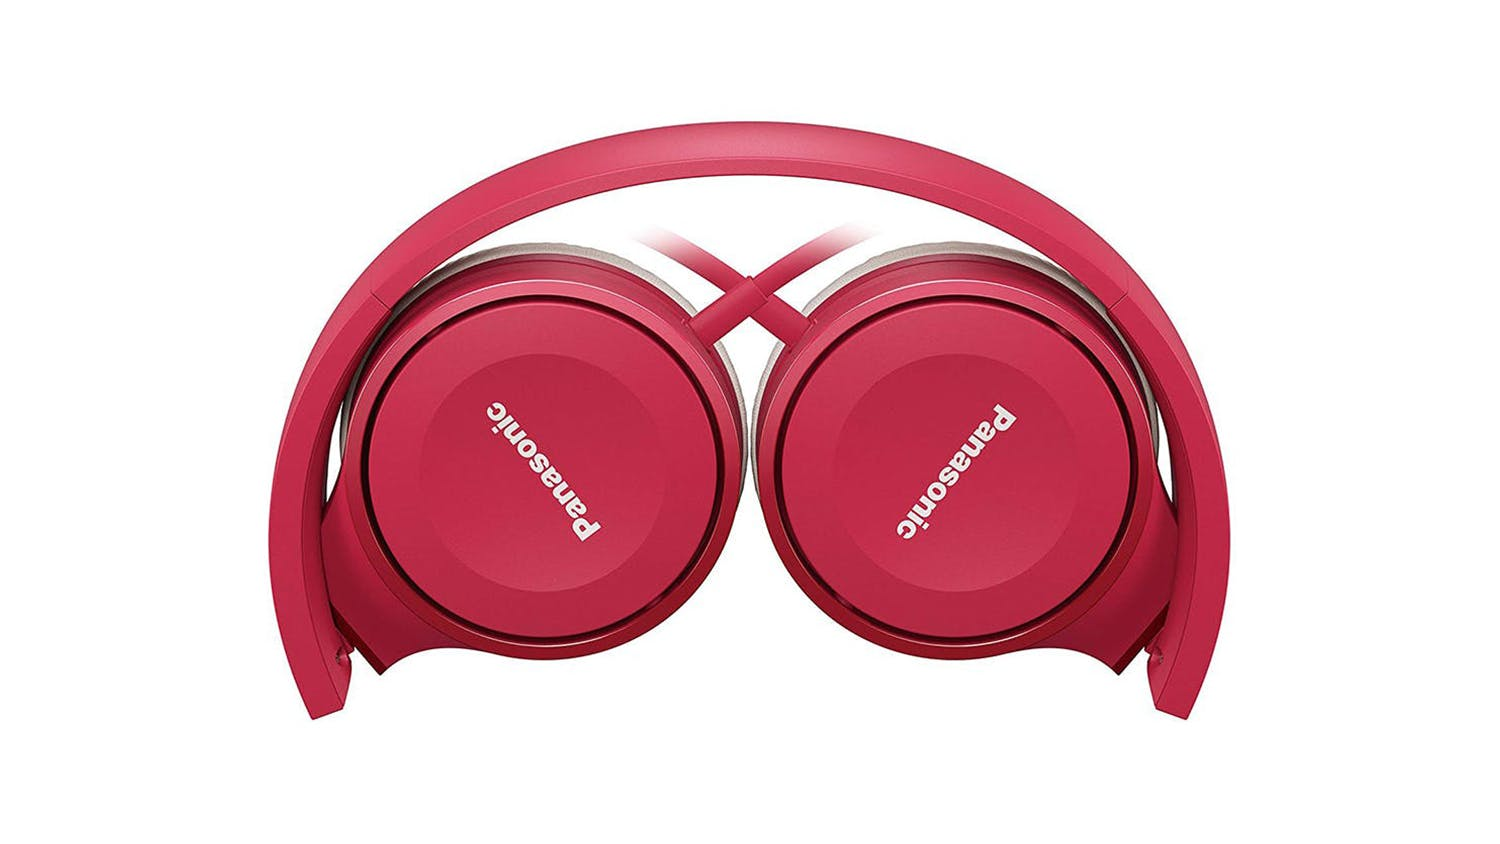 Panasonic RP-HF100 On-Ear Headphones - Pink